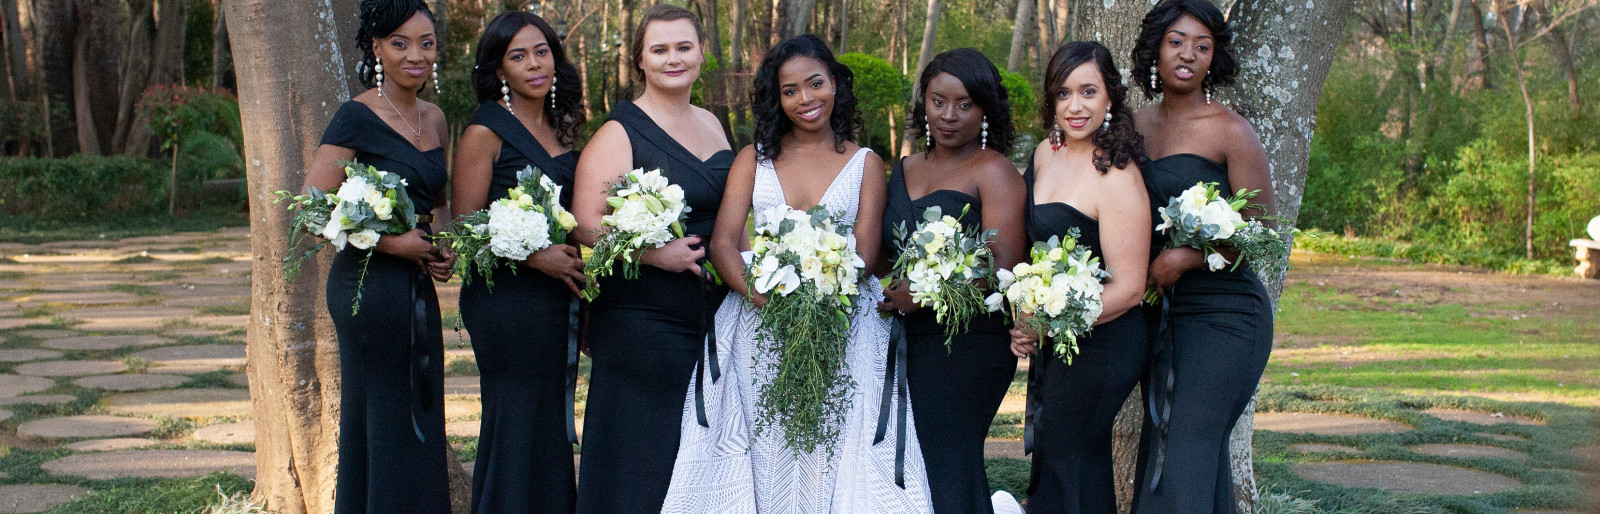 Chanré-Anne Photography Wedding Special